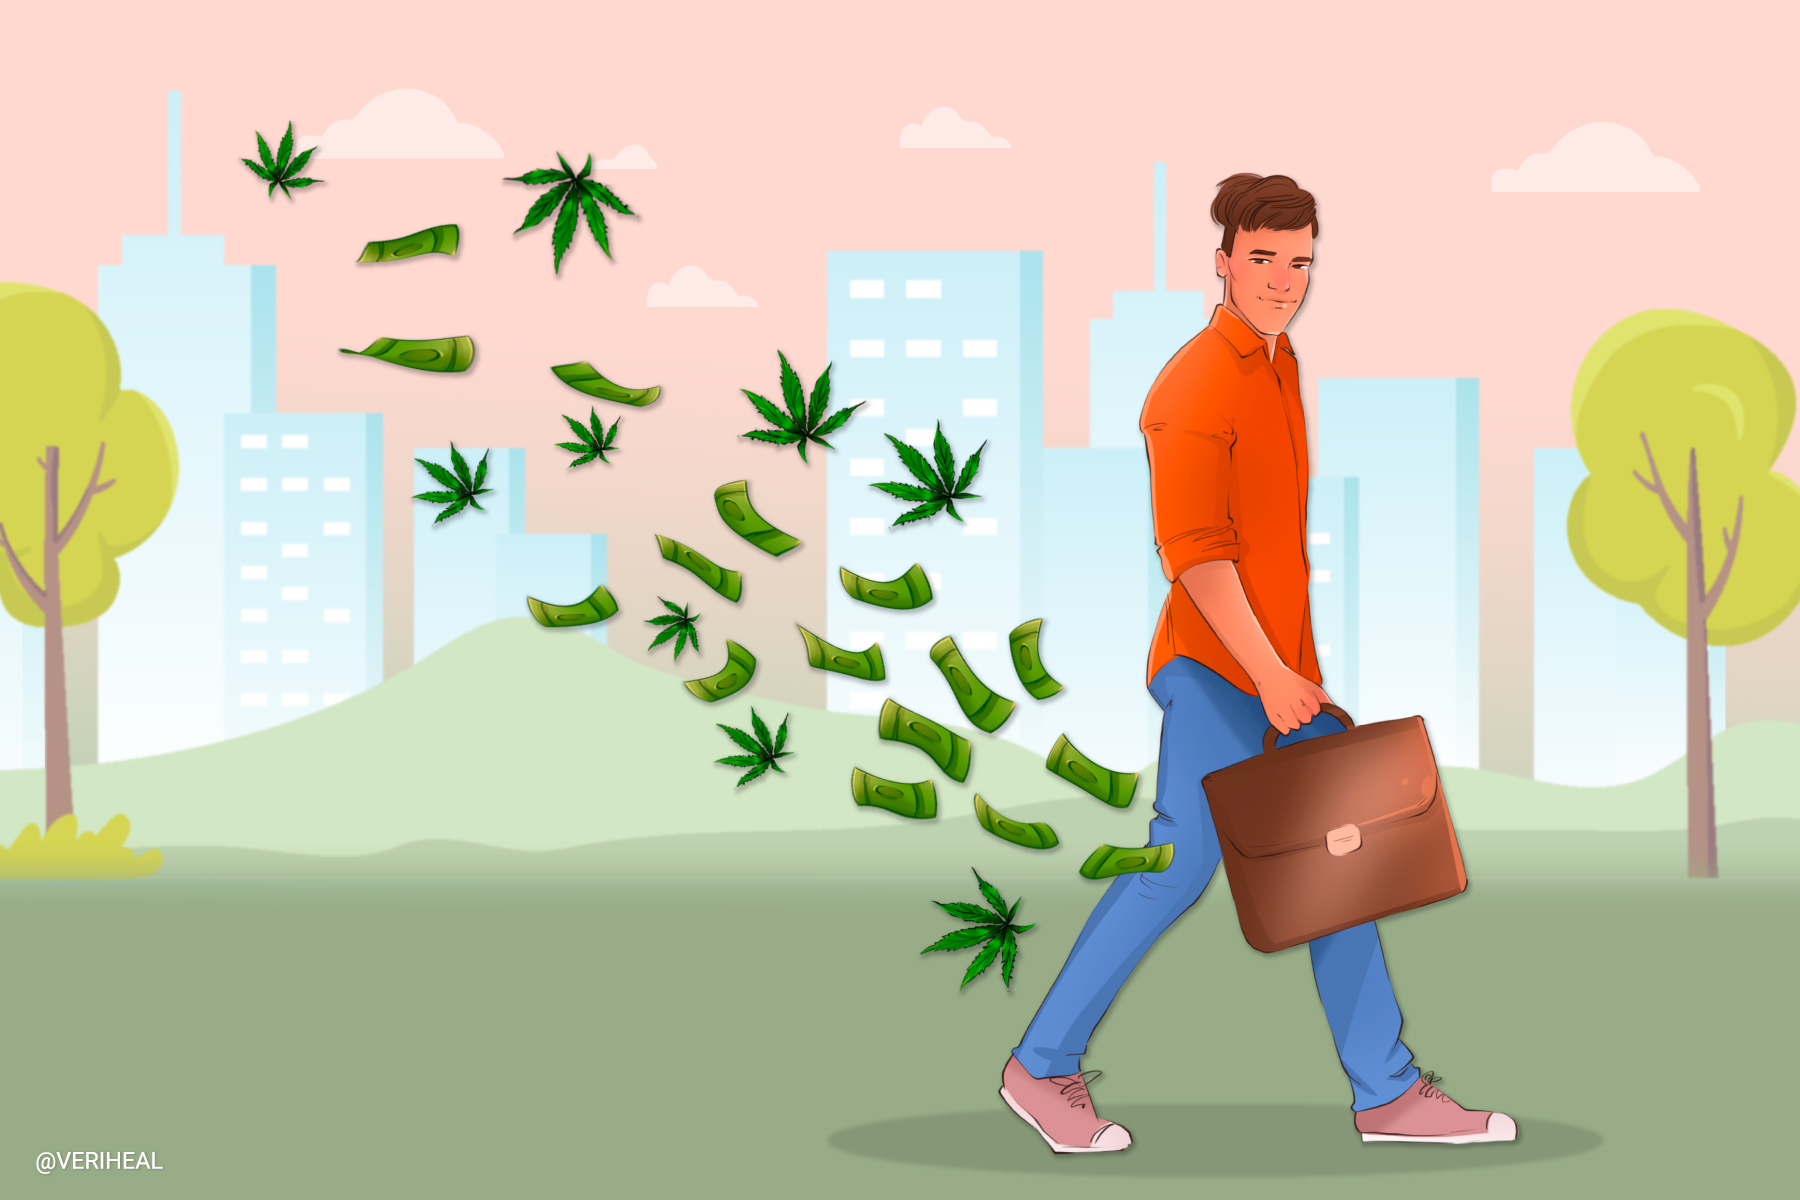 We Need to Bring an End to Banking Barricades for Cannabis Businesses